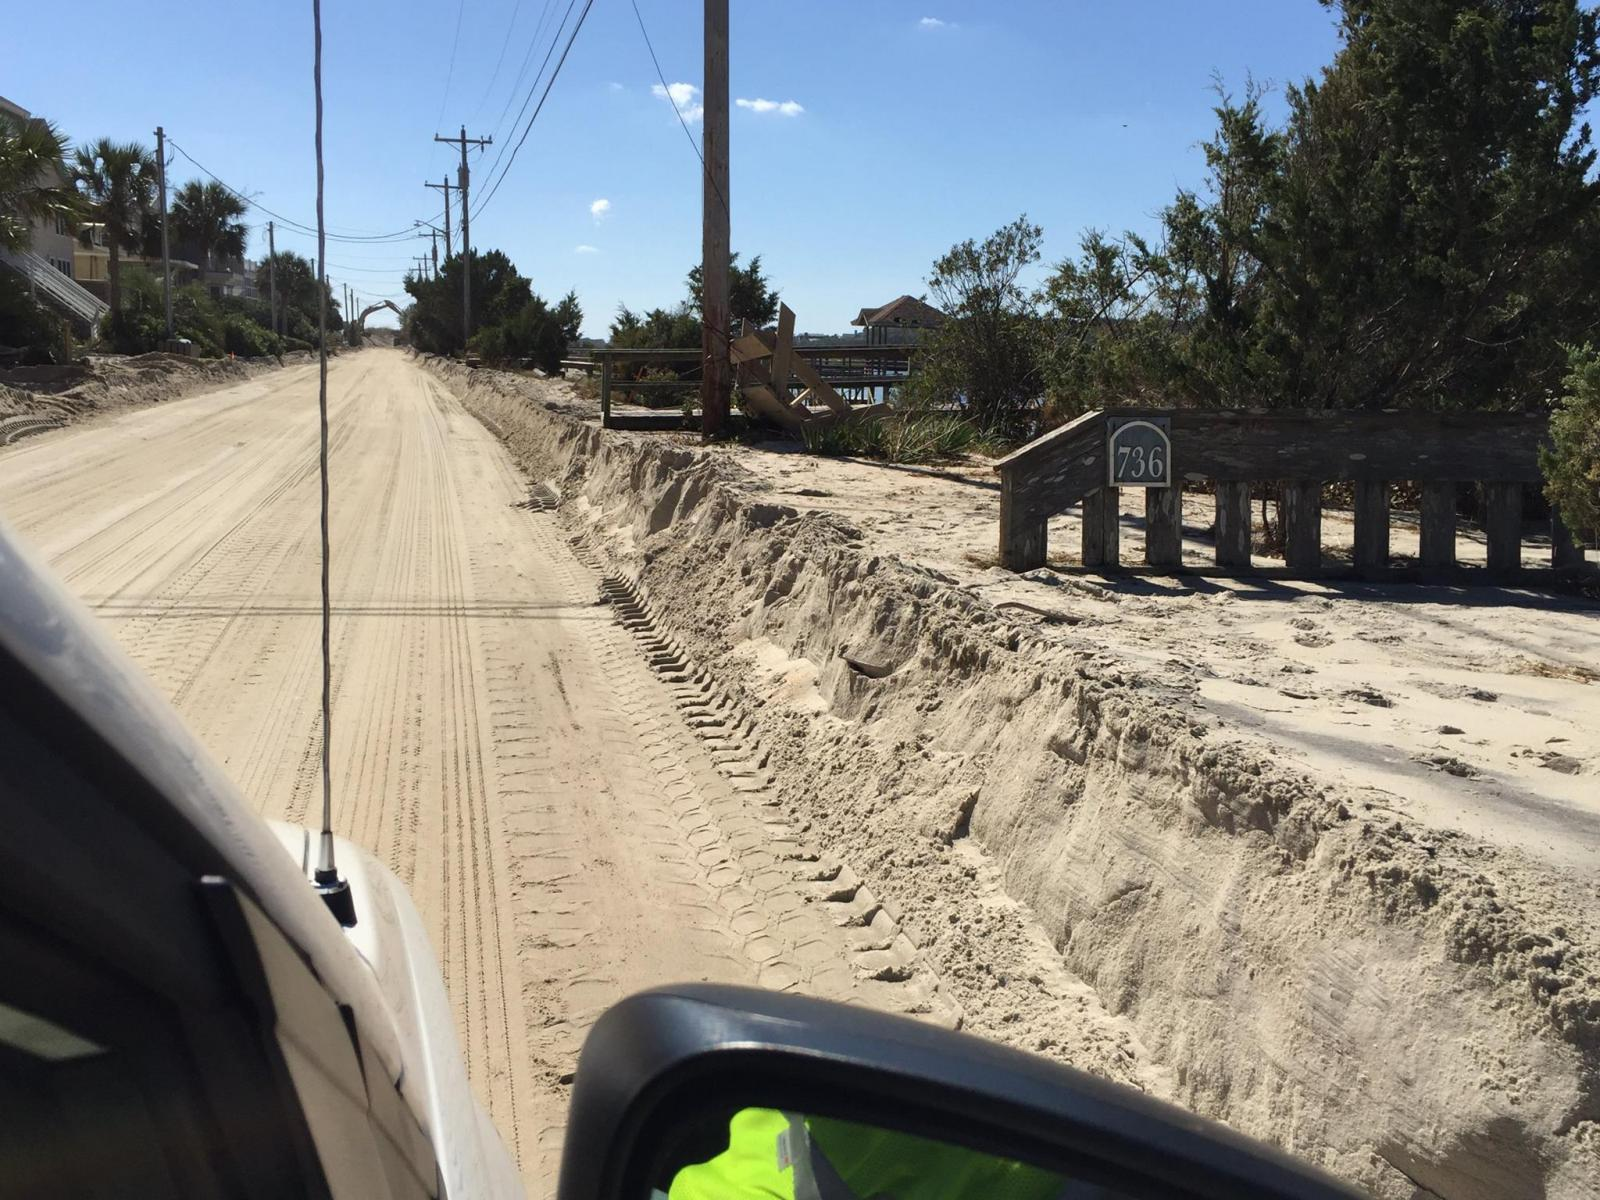 Deep sand covers the Springs Road in Pawleys Island, SC, carried in by Hurricane Matthew's storm surge.